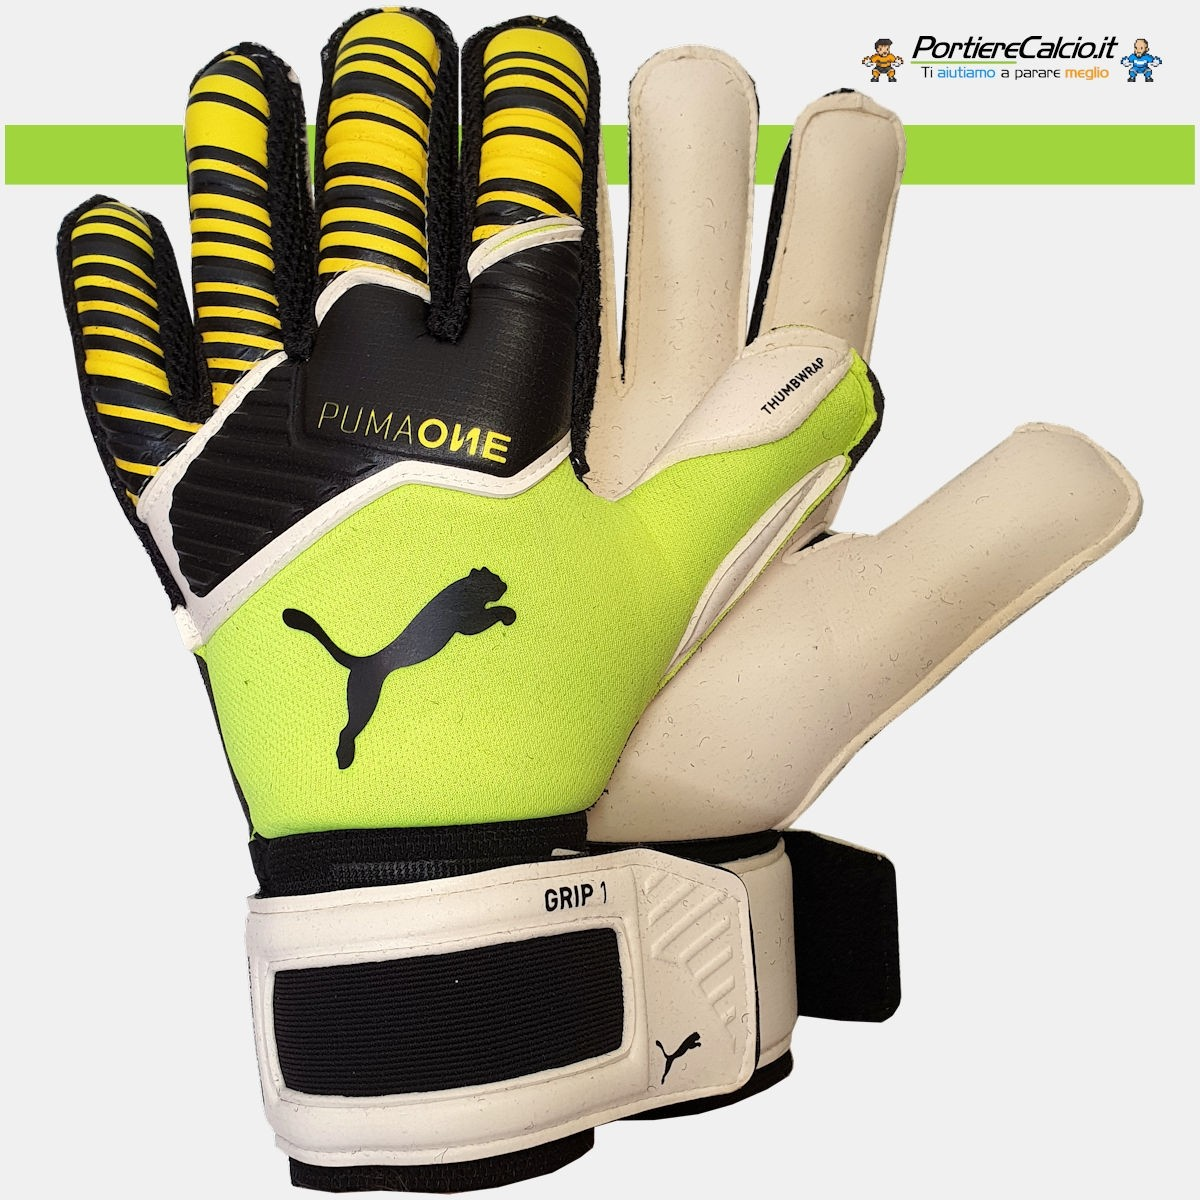 Buffon usa i guanti Puma One Grip 1